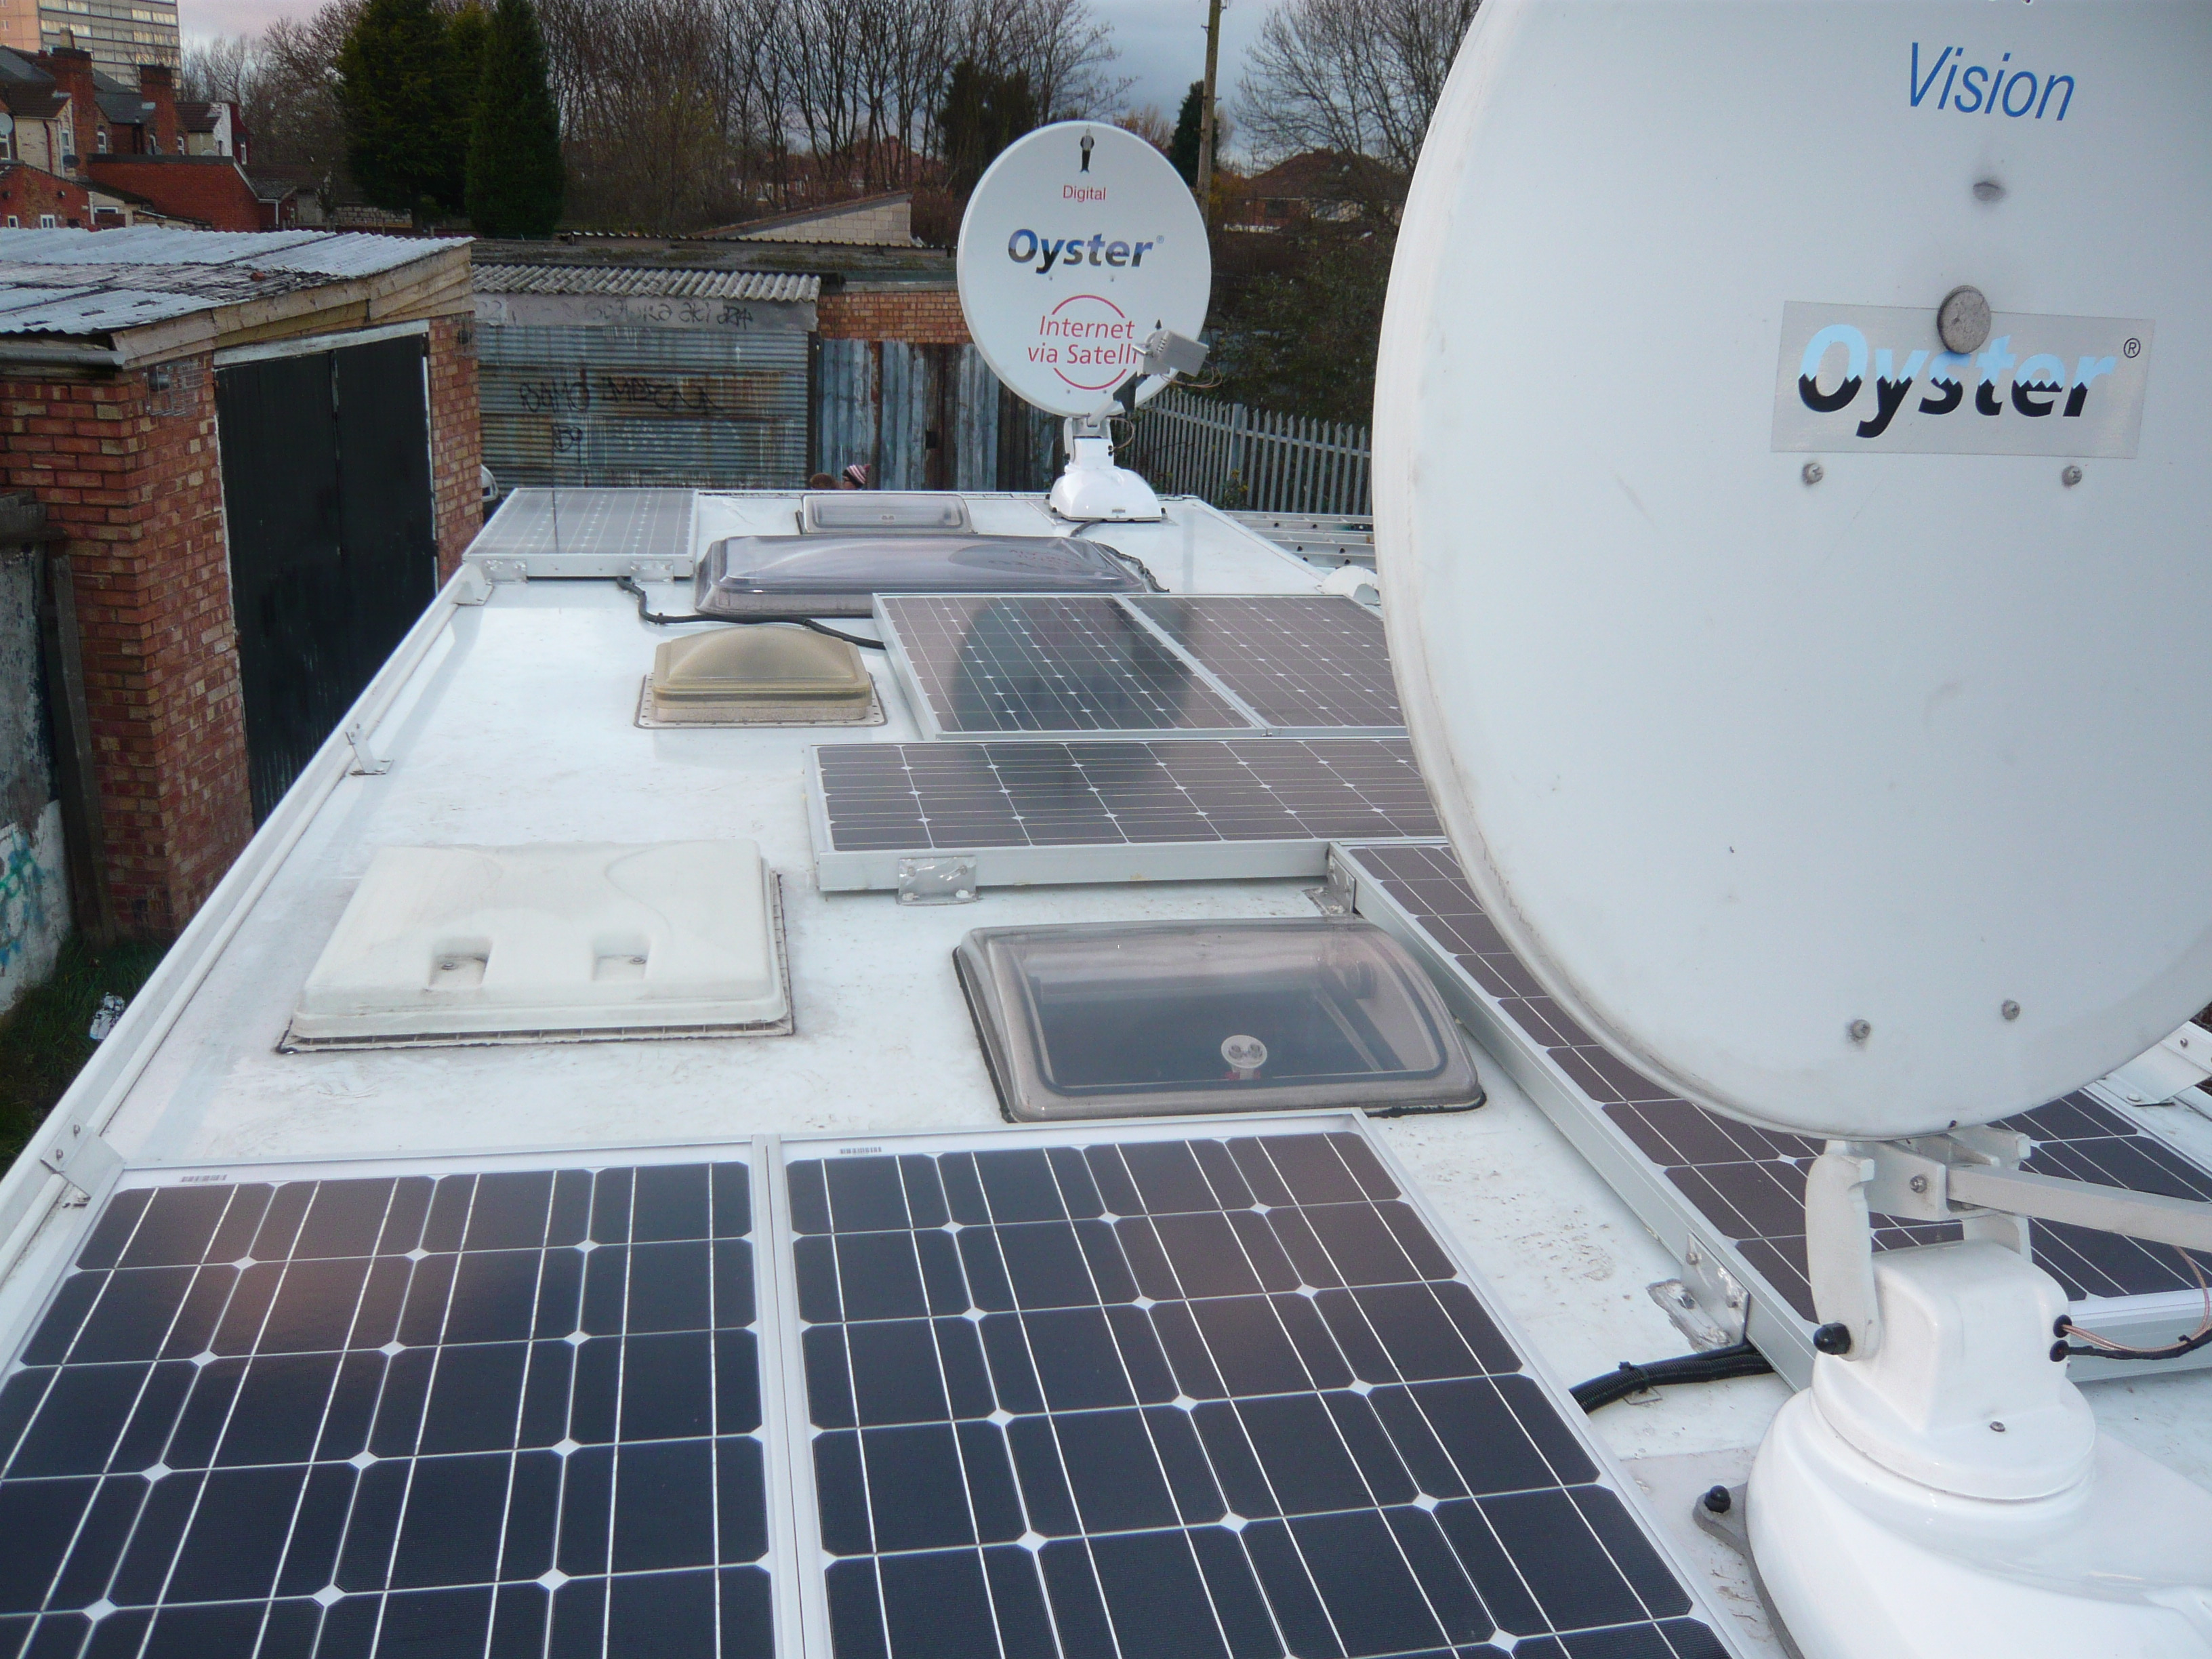 Solar panels, Oyster Internet and Oyster Vision